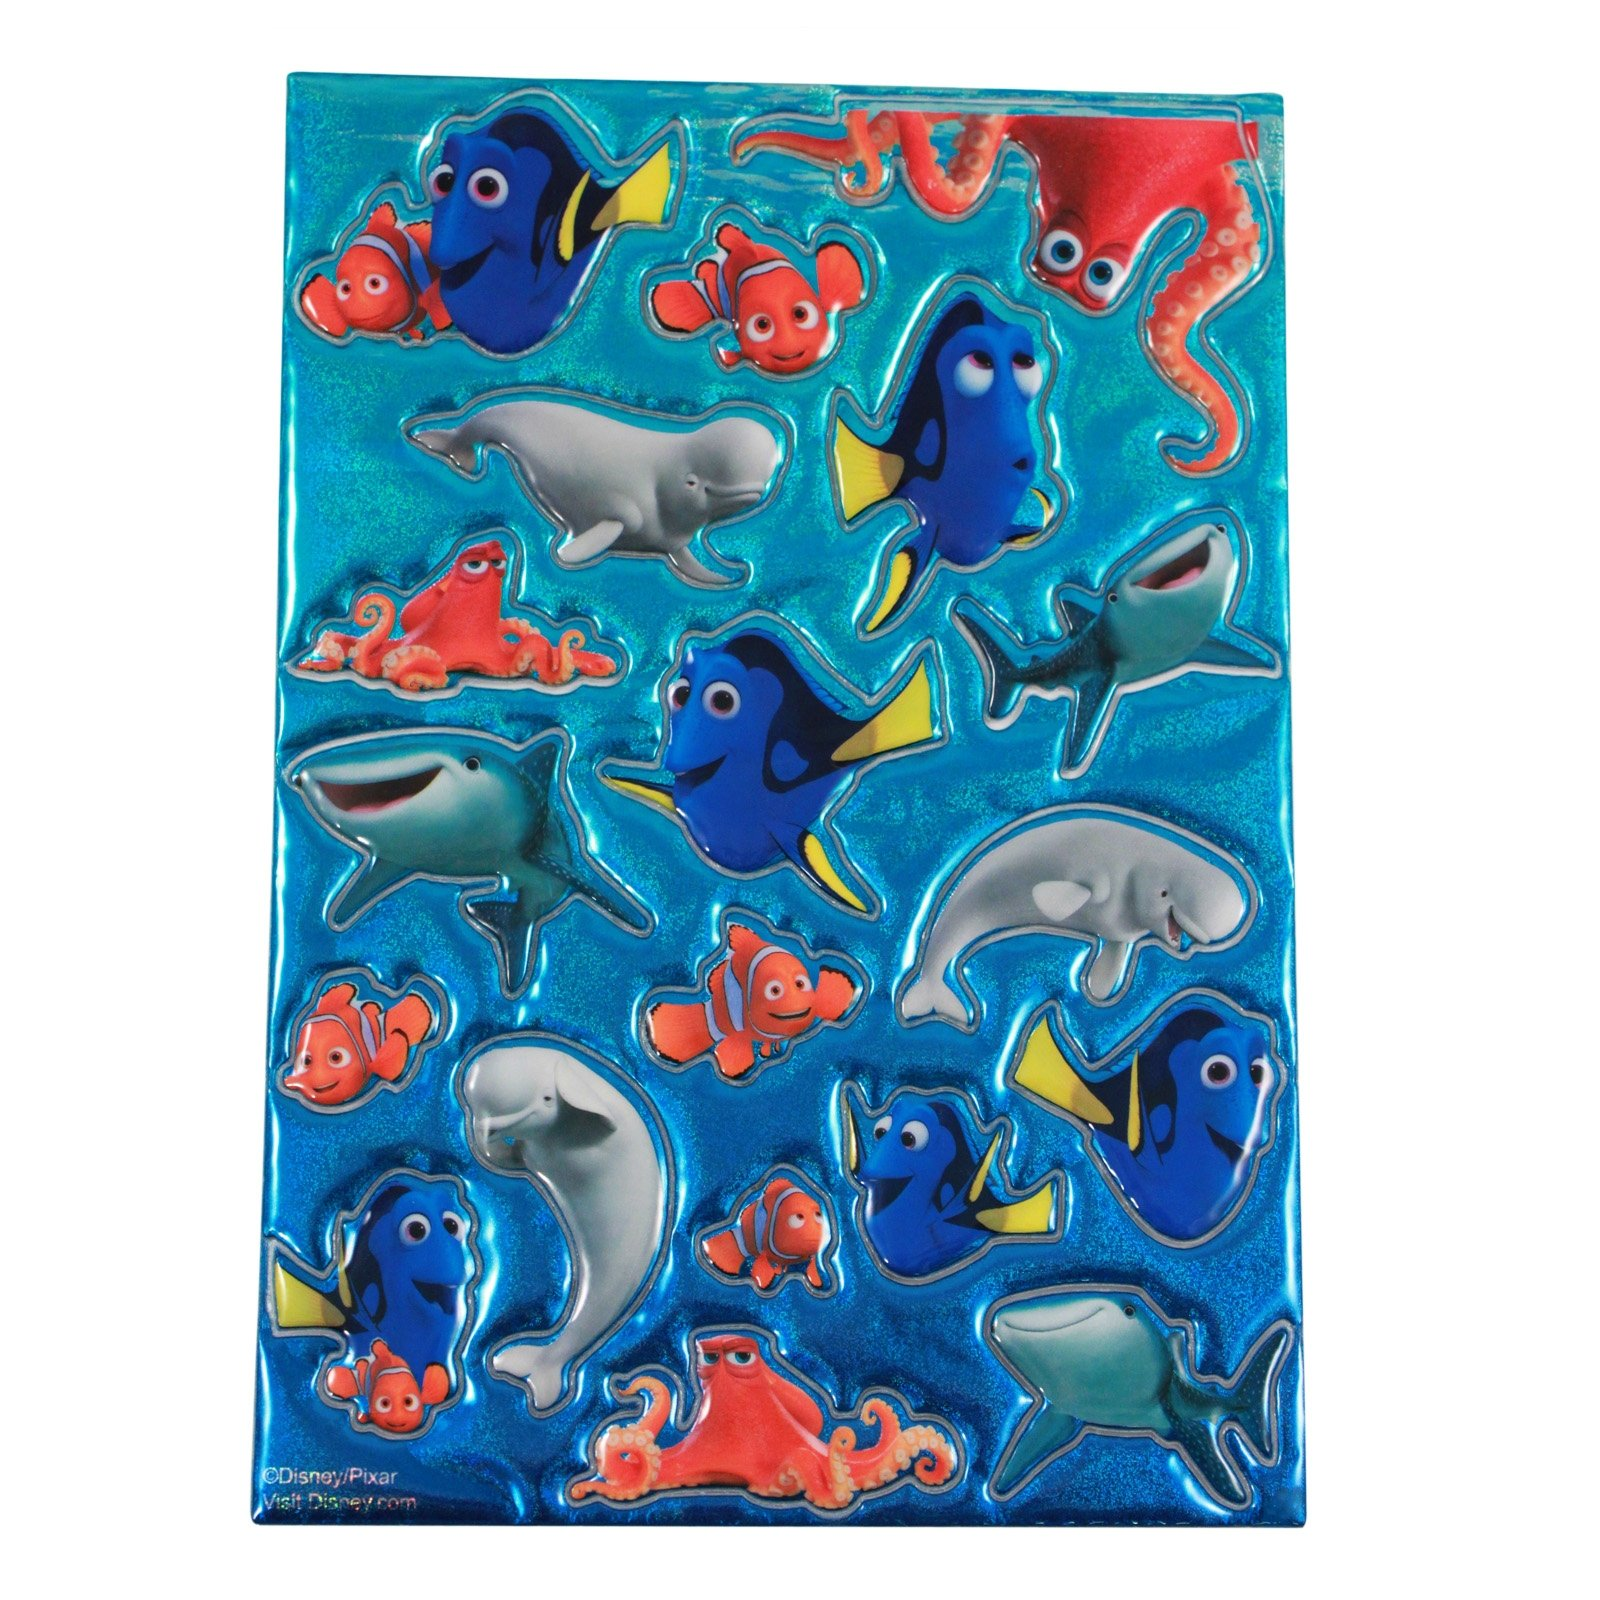 Dory Puffy Stickers